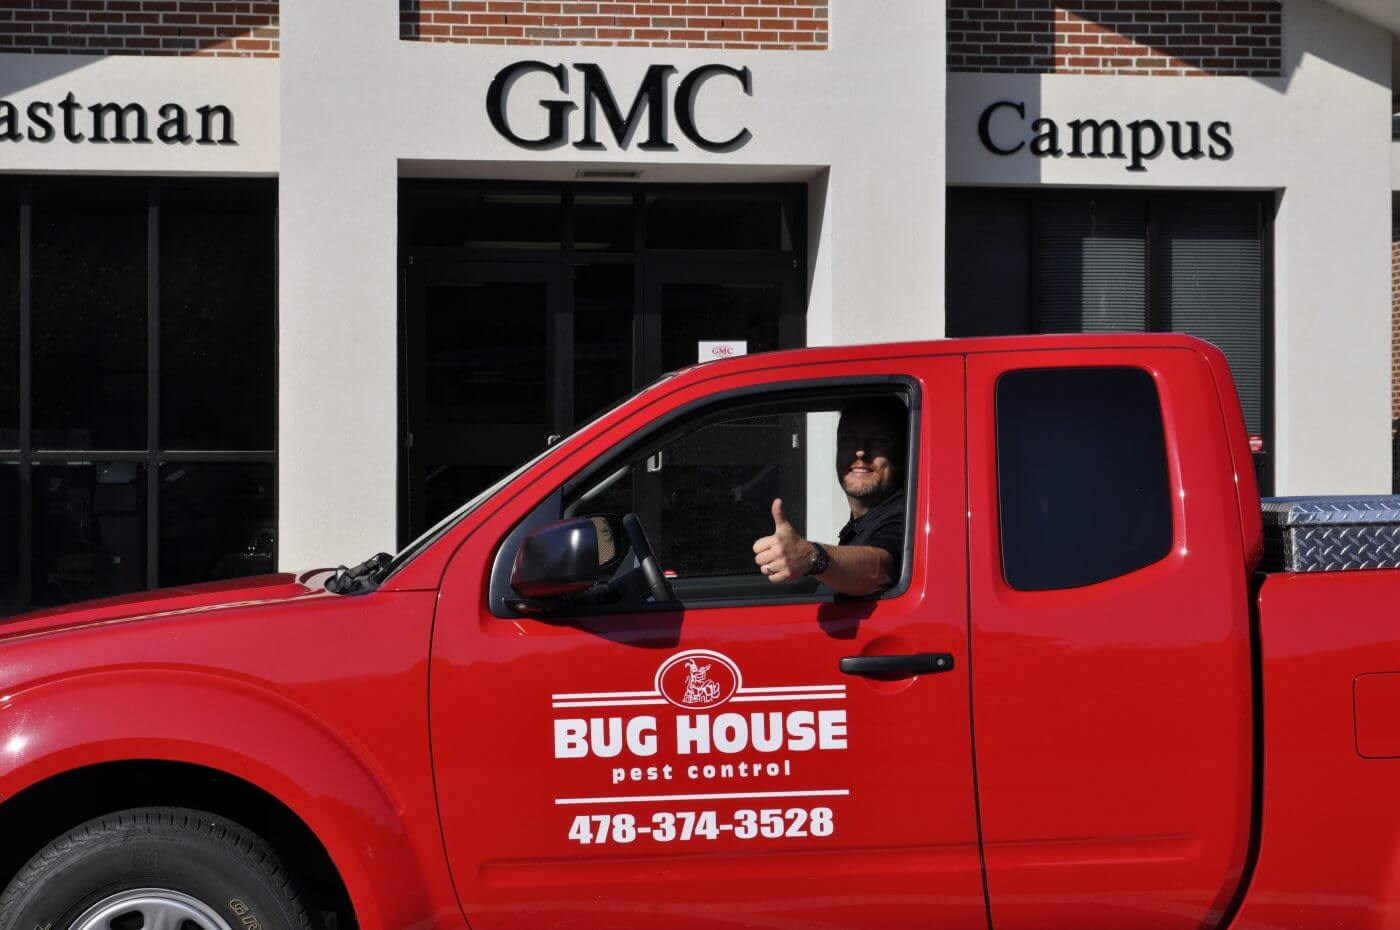 Bug House Eastman pest control employee driving company truck